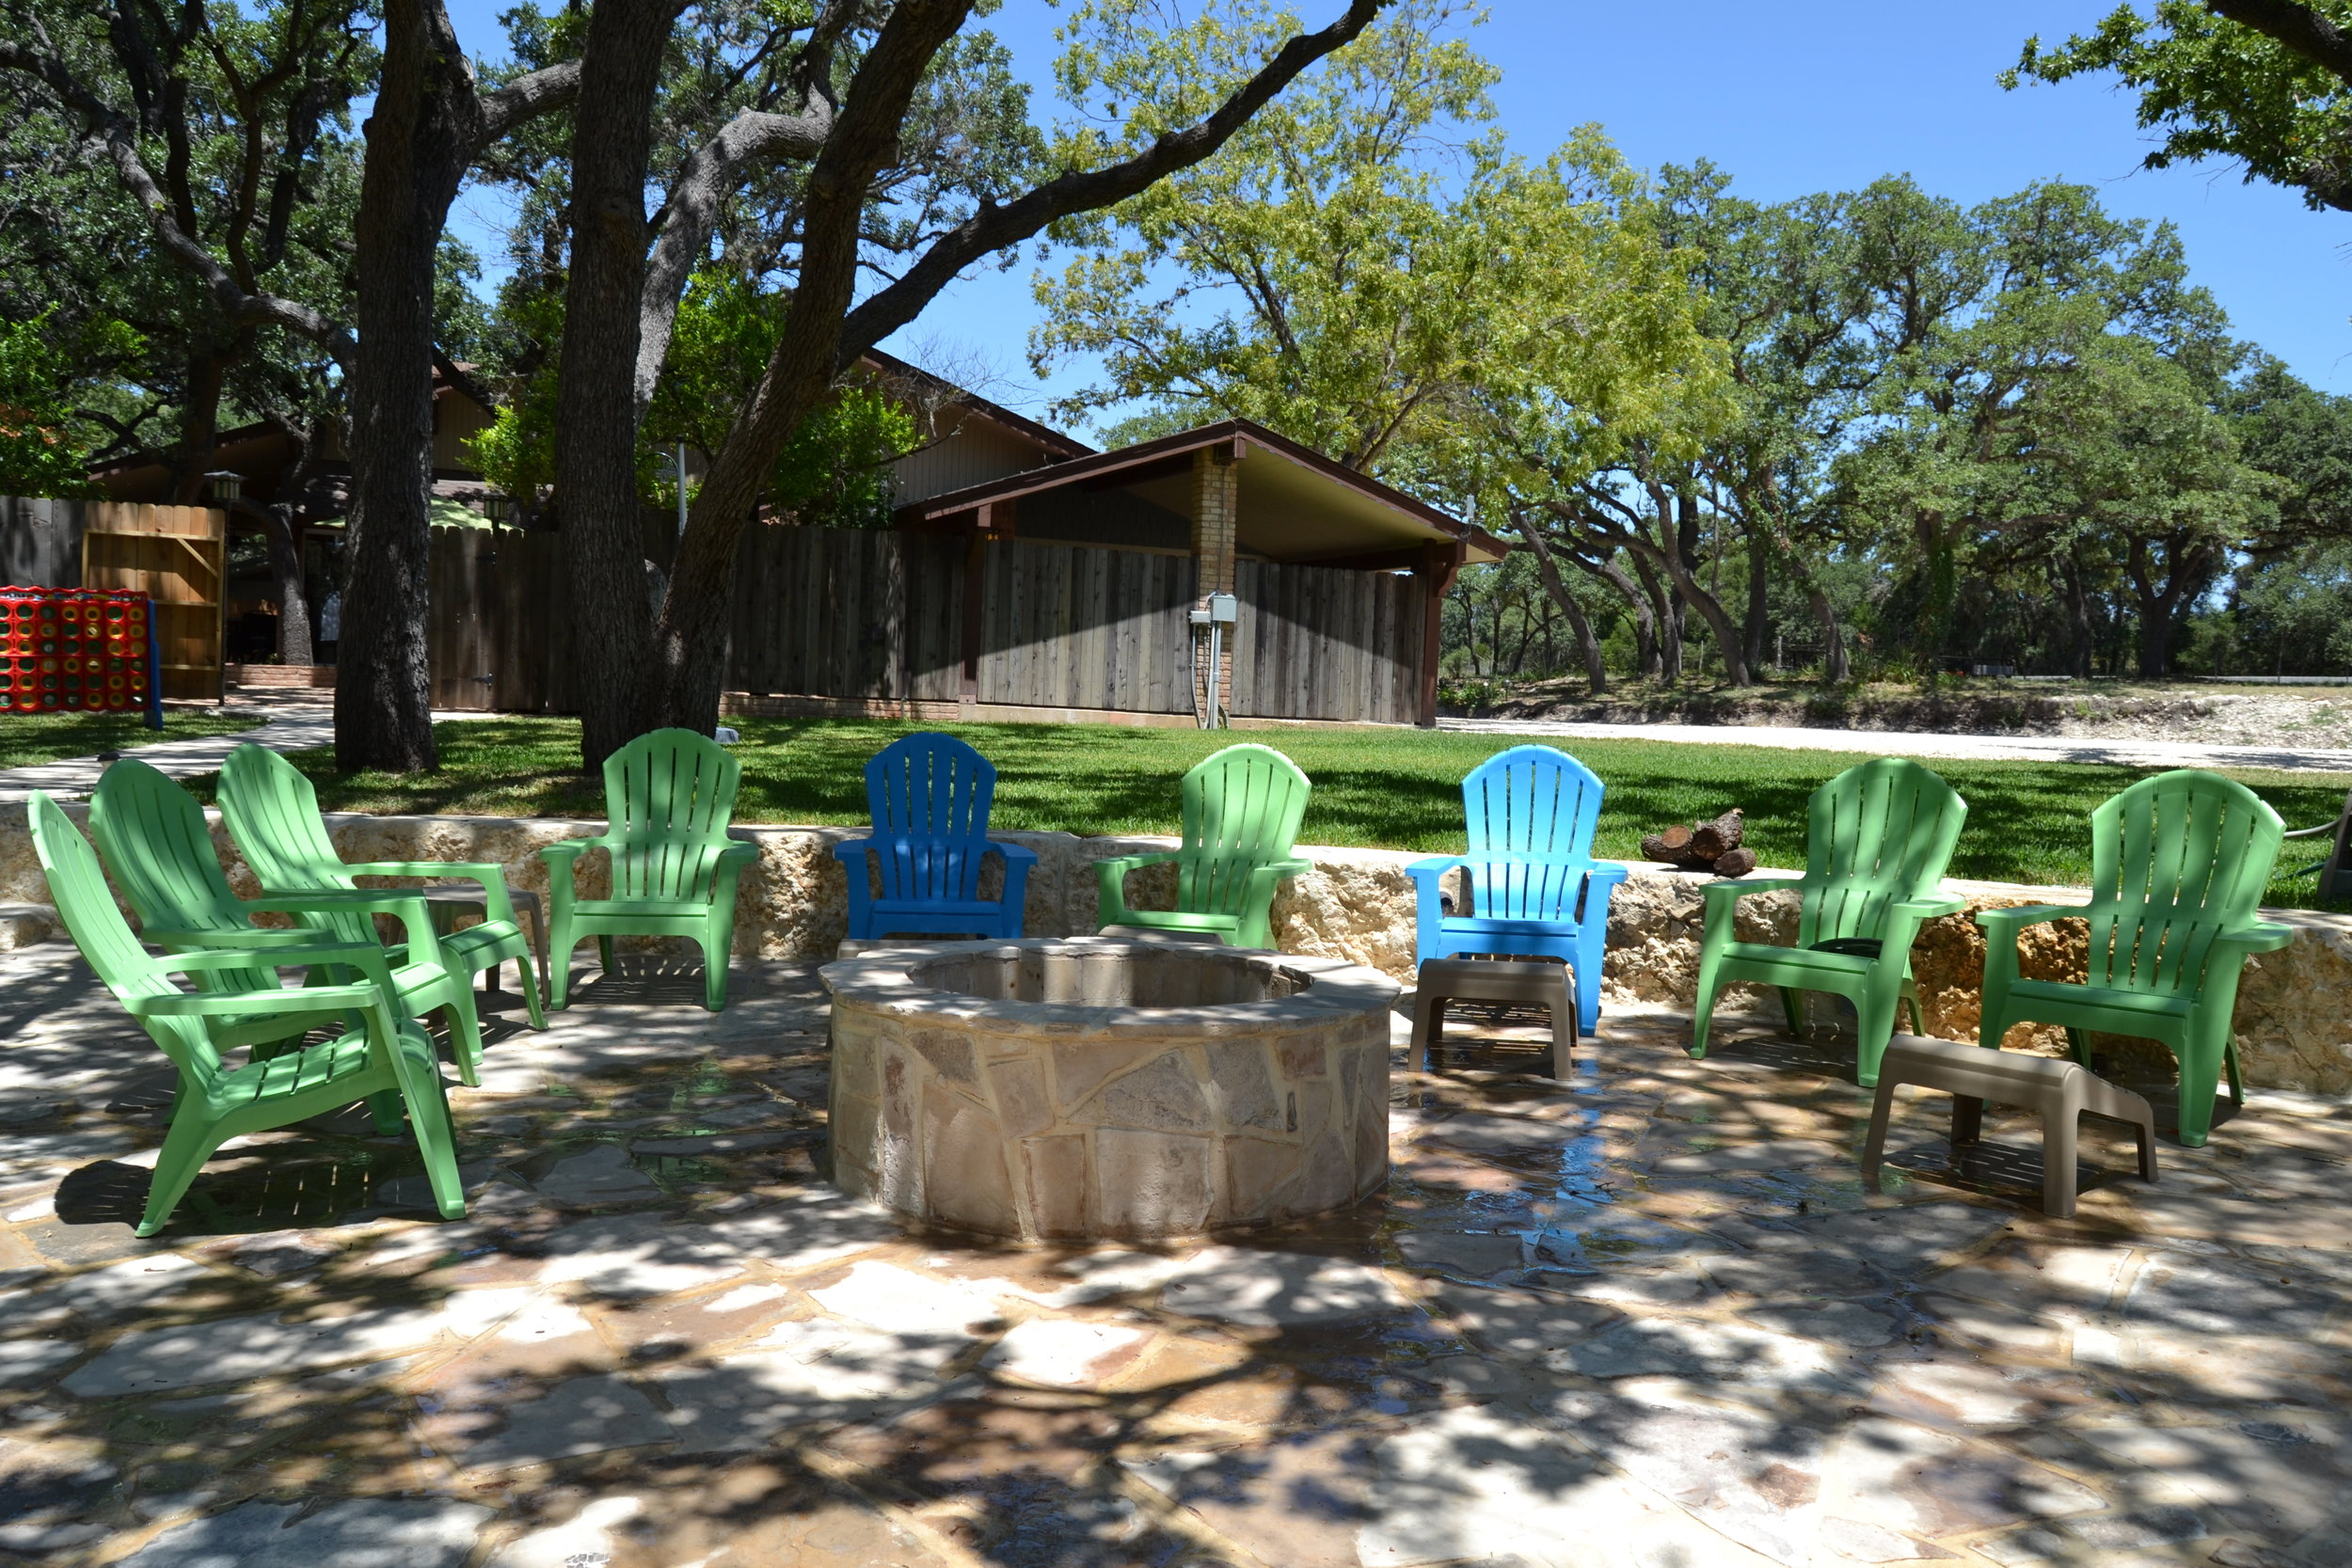 Rio Grande River House - Lounge Area & Fire Pit